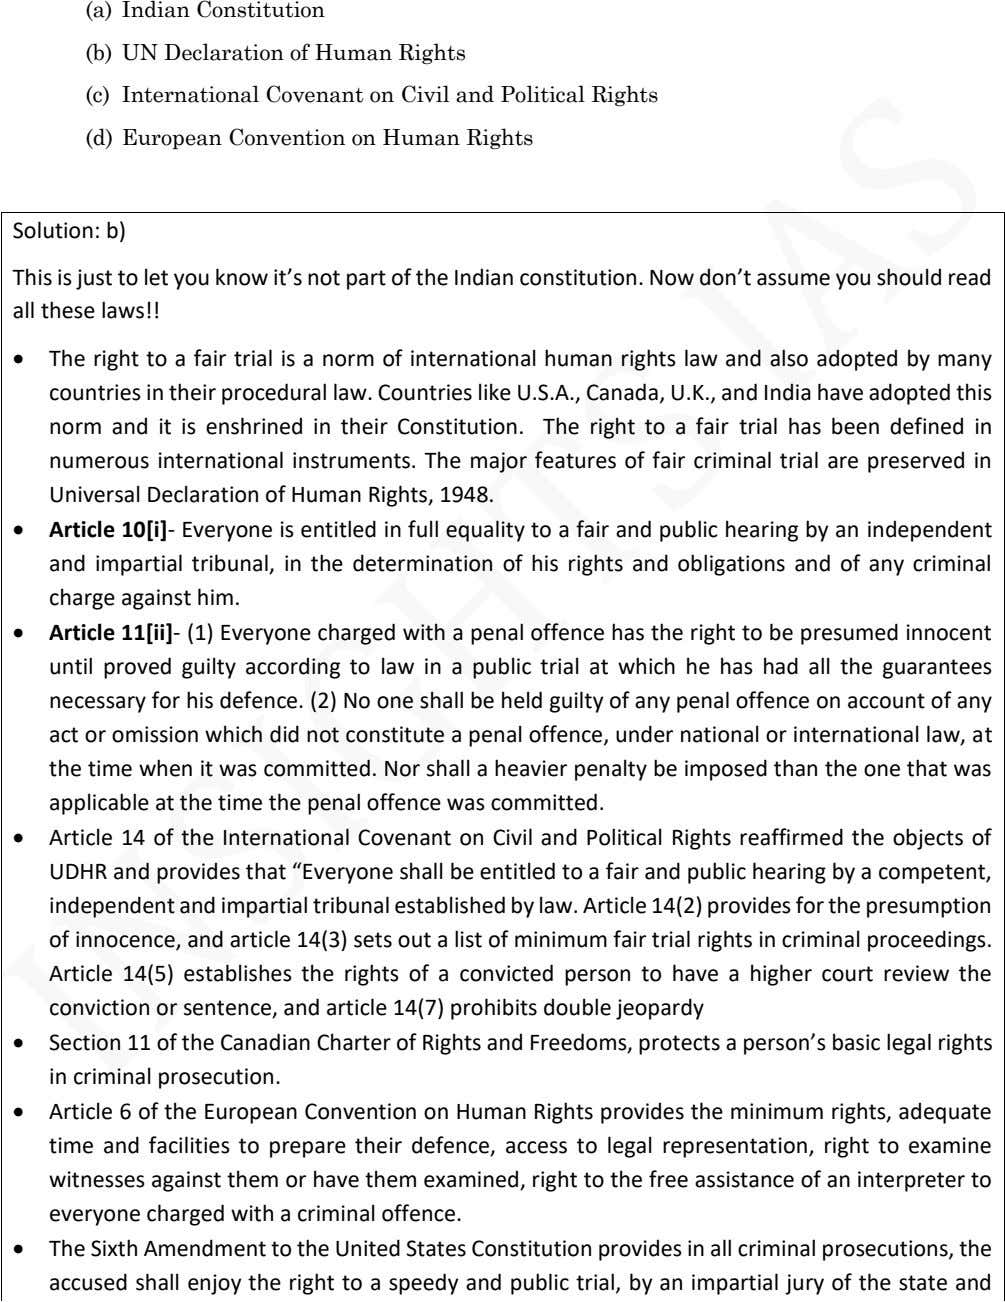 (a) Indian Constitution (b) UN Declaration of Human Rights (c) International Covenant on Civil and Political